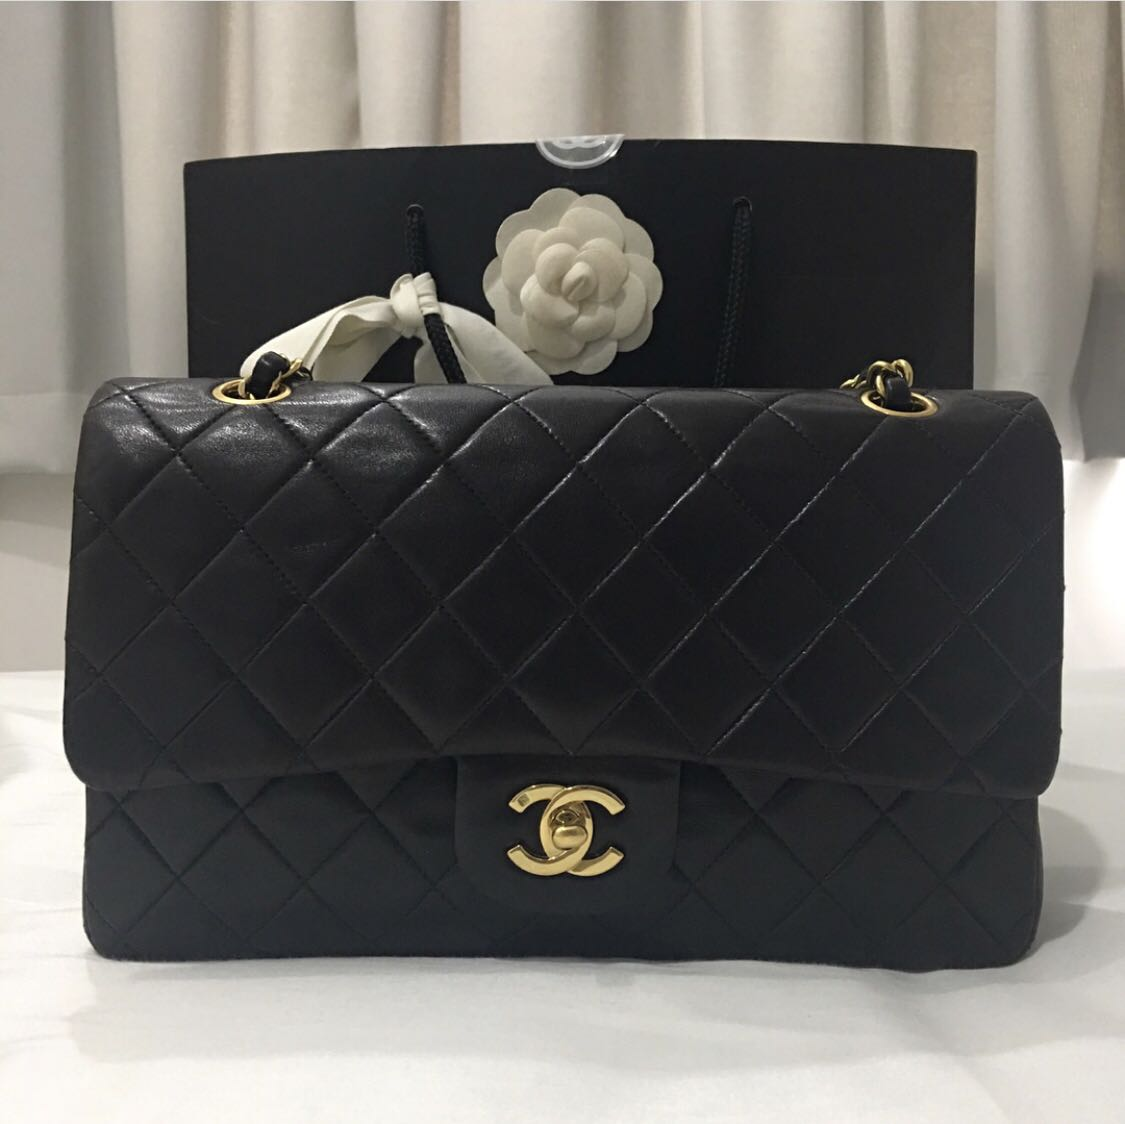 8aaf48194a1181 Chanel classic medium, Luxury, Bags & Wallets, Handbags on Carousell